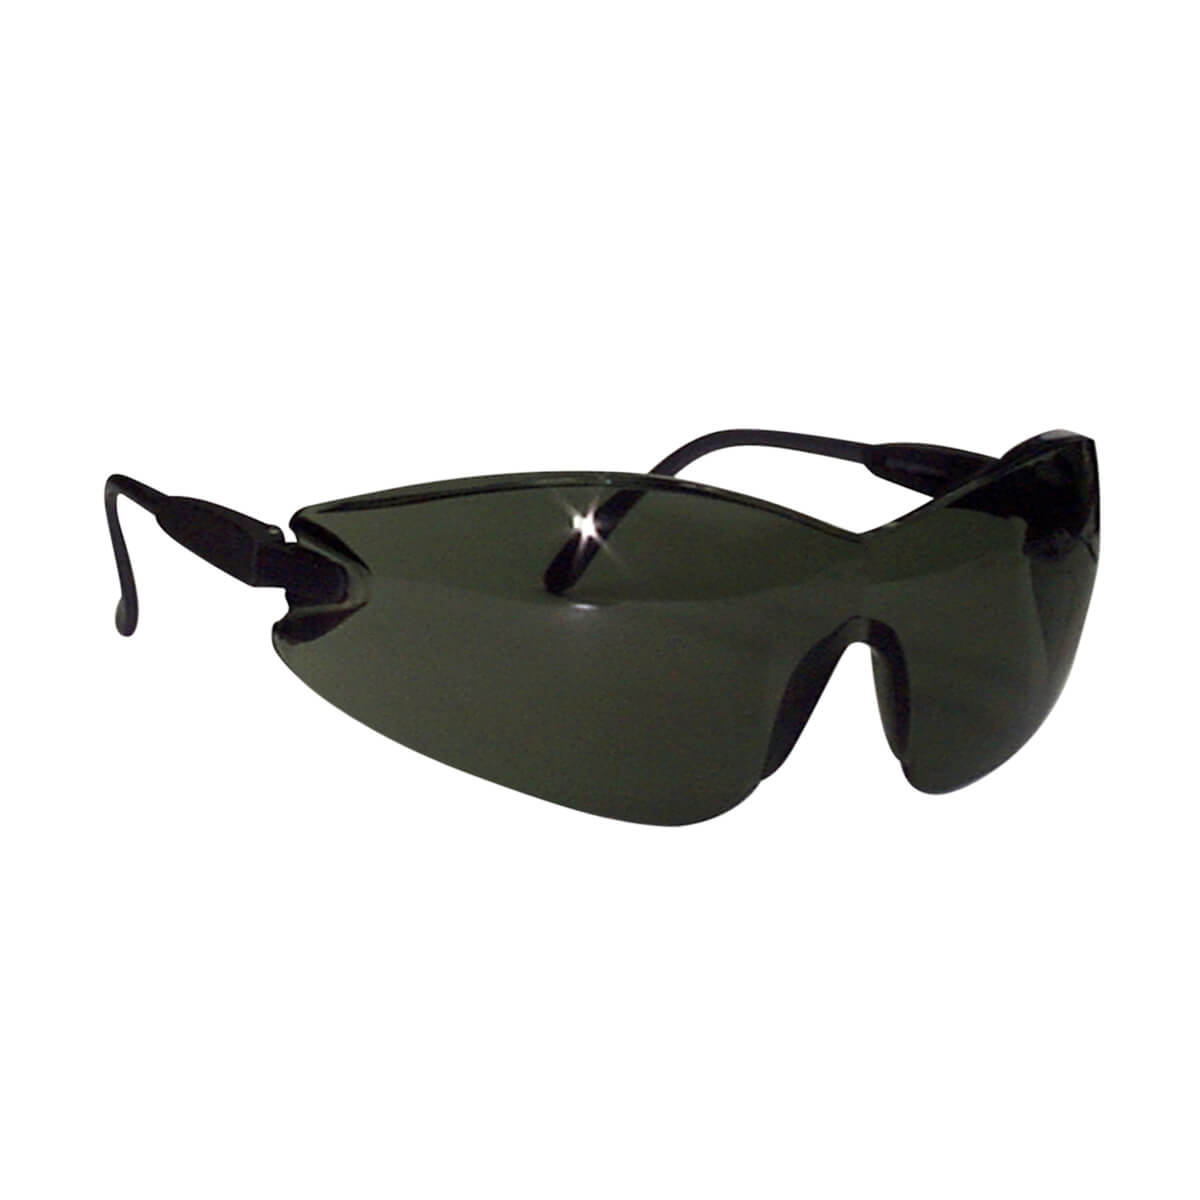 Brooklyn Protective Eyewear - Smoked Lens